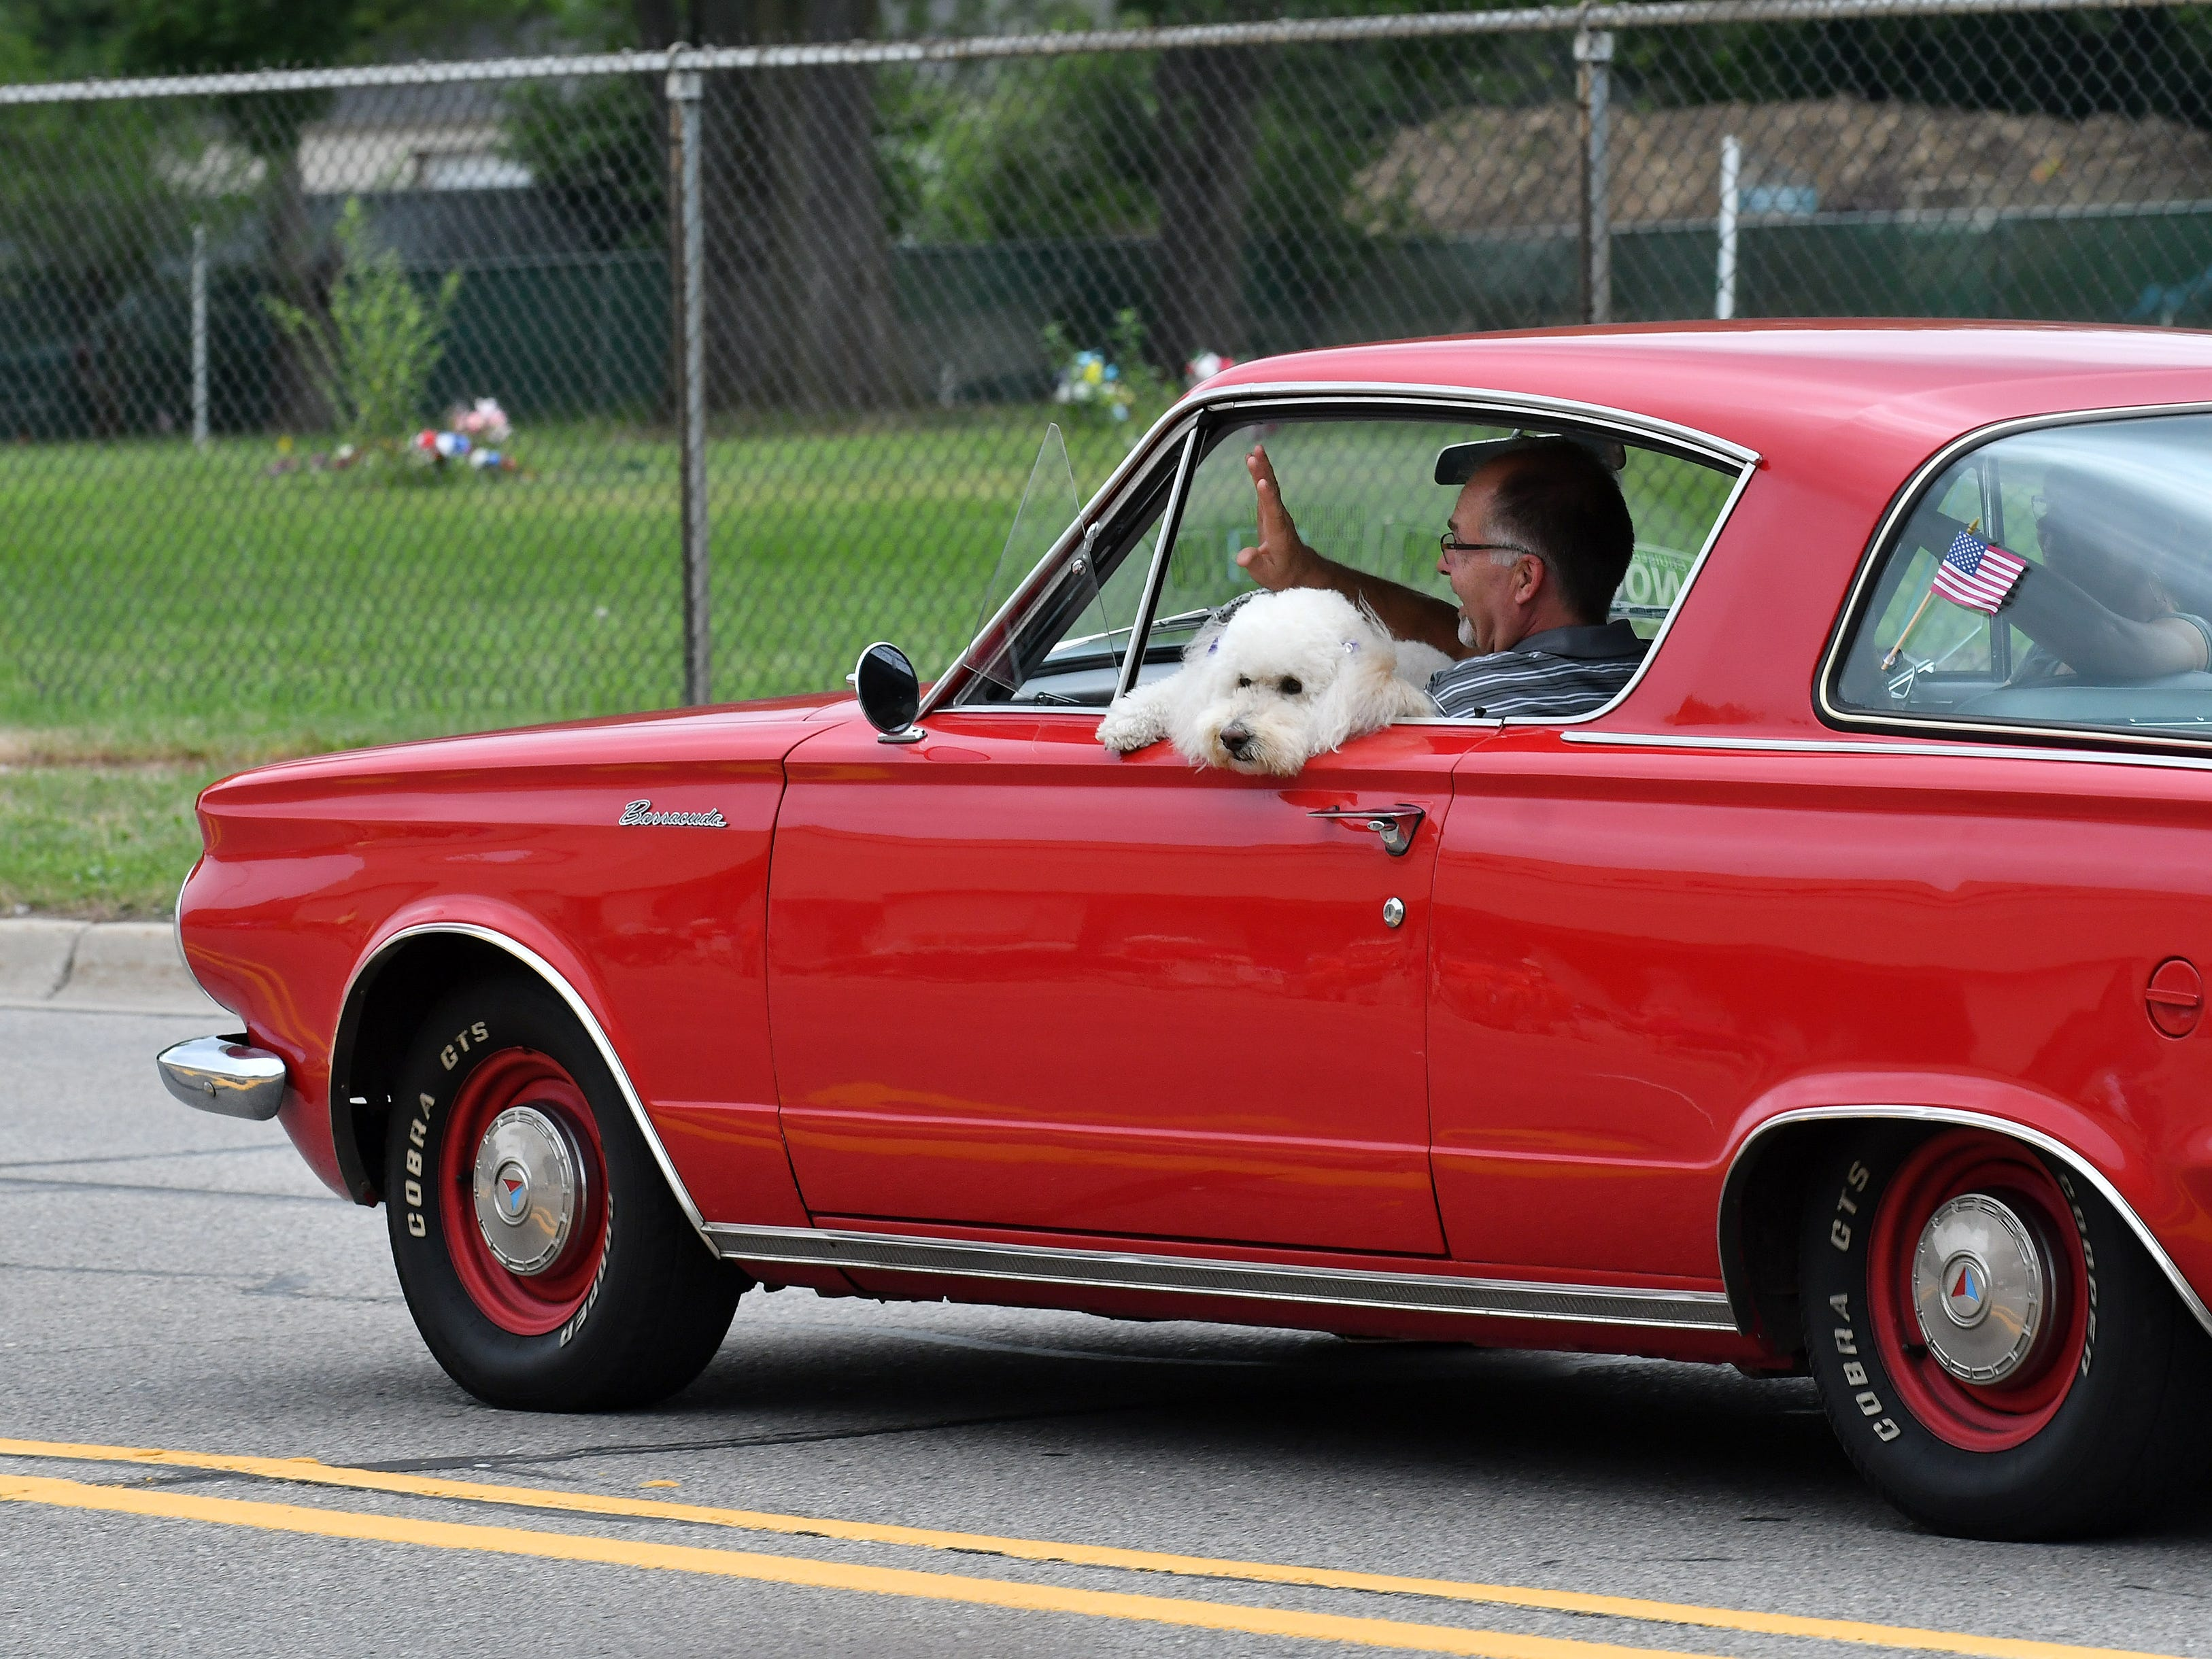 A man driving a Plymouth Barracuda lets his dog say hello at the Berkley CruiseFest Classic Car Parade Friday on 12 Mile in Berkley.